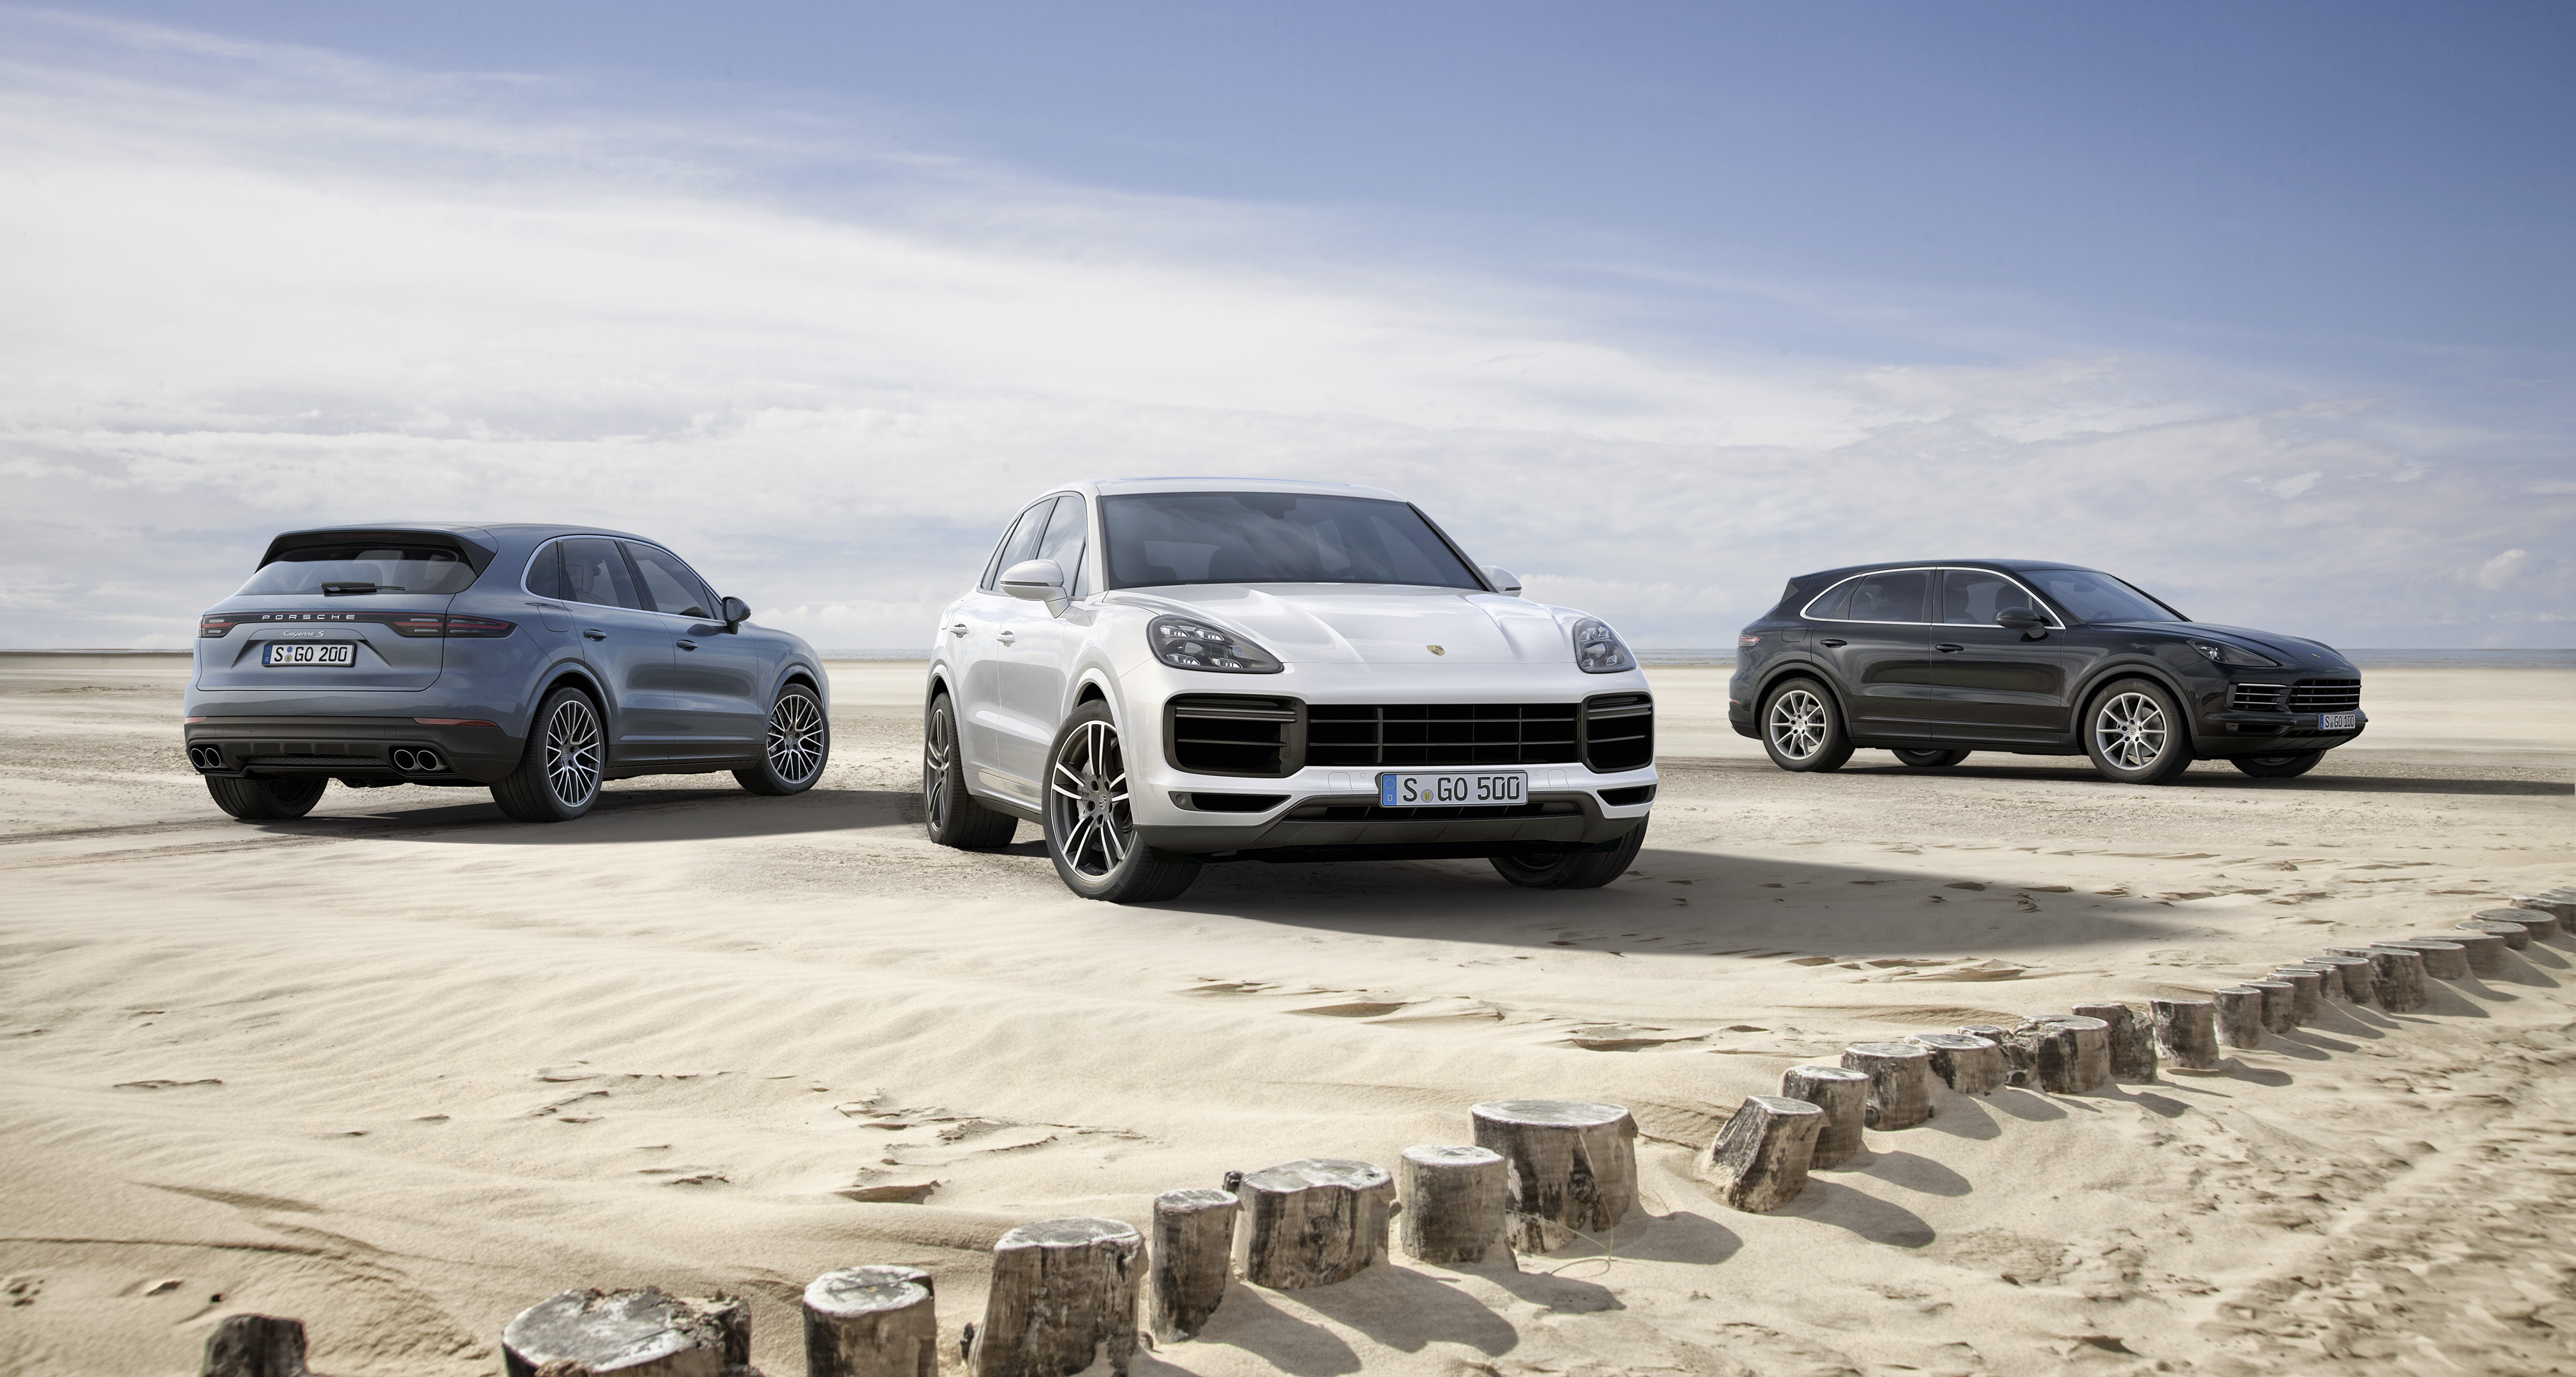 Porsche Cars 4k Ultra HD Wallpaper Pictures and Images